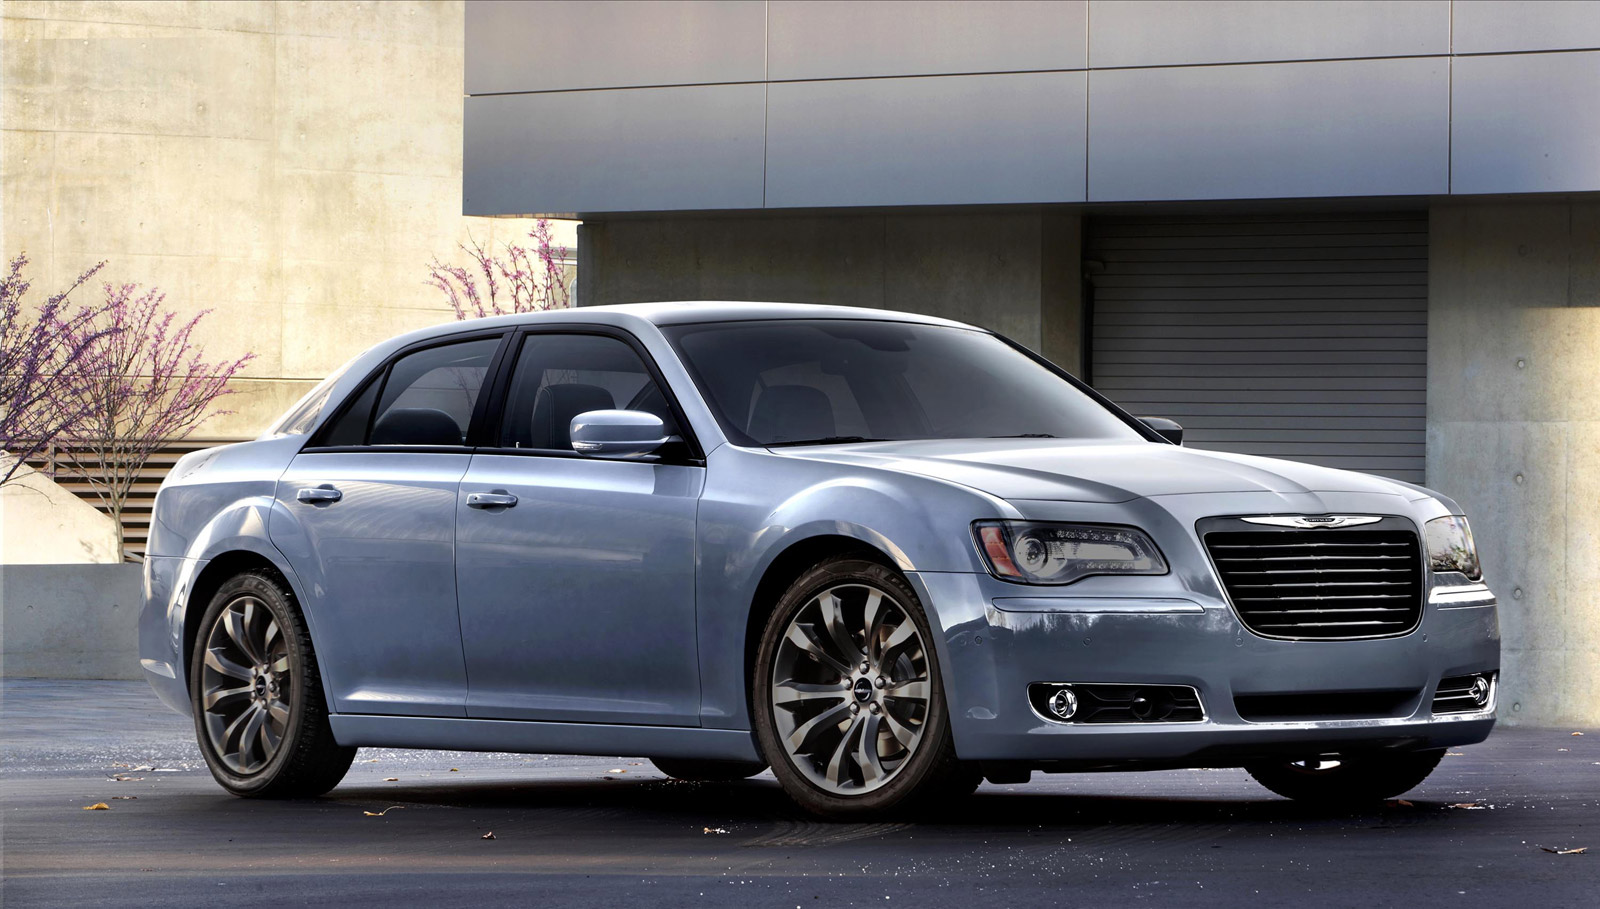 2014 Chrysler 300 Review, Ratings, Specs, Prices, and ...